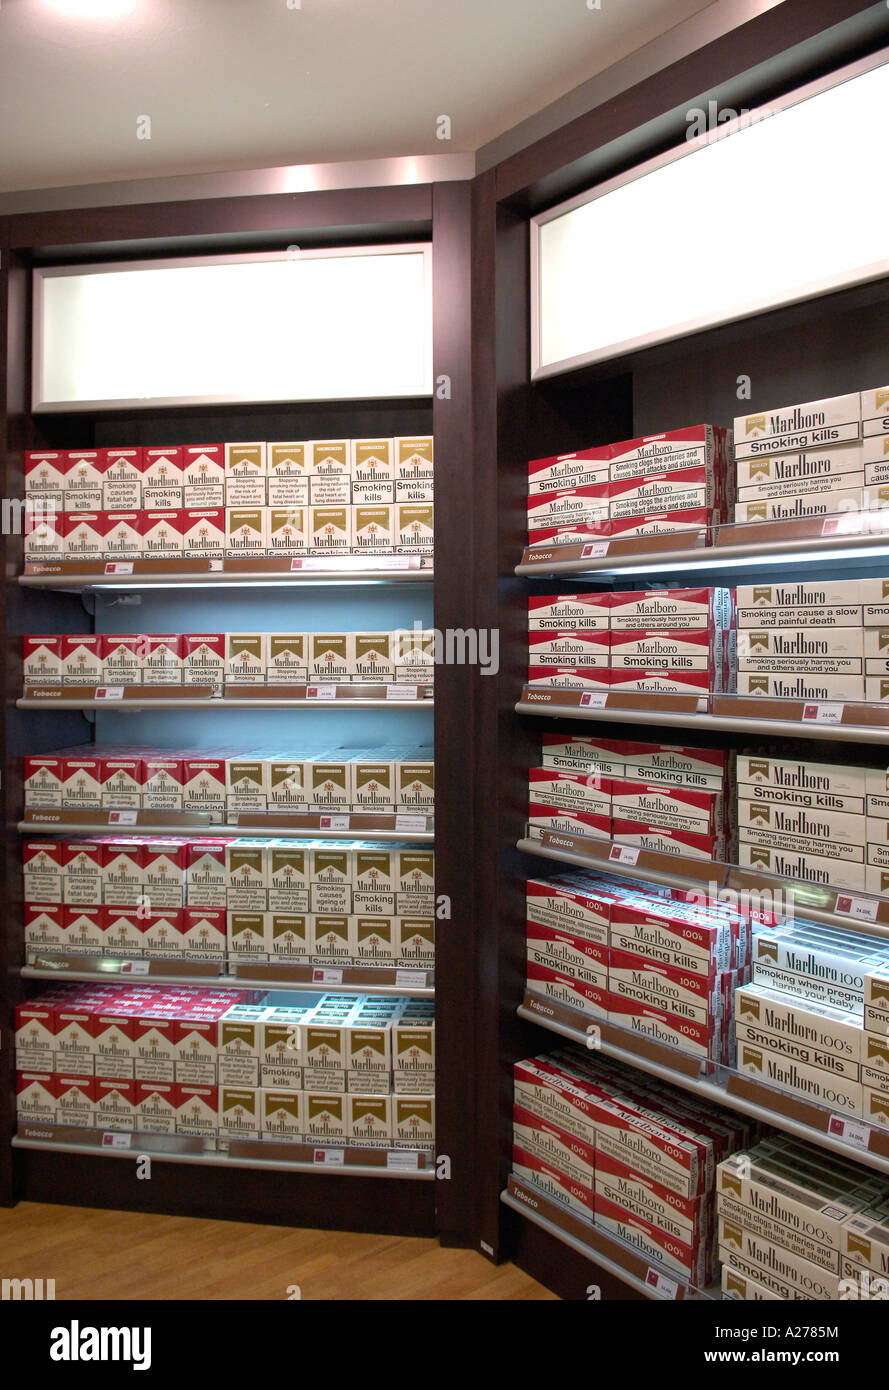 Where to buy nicotine free Marlboro cigarettes